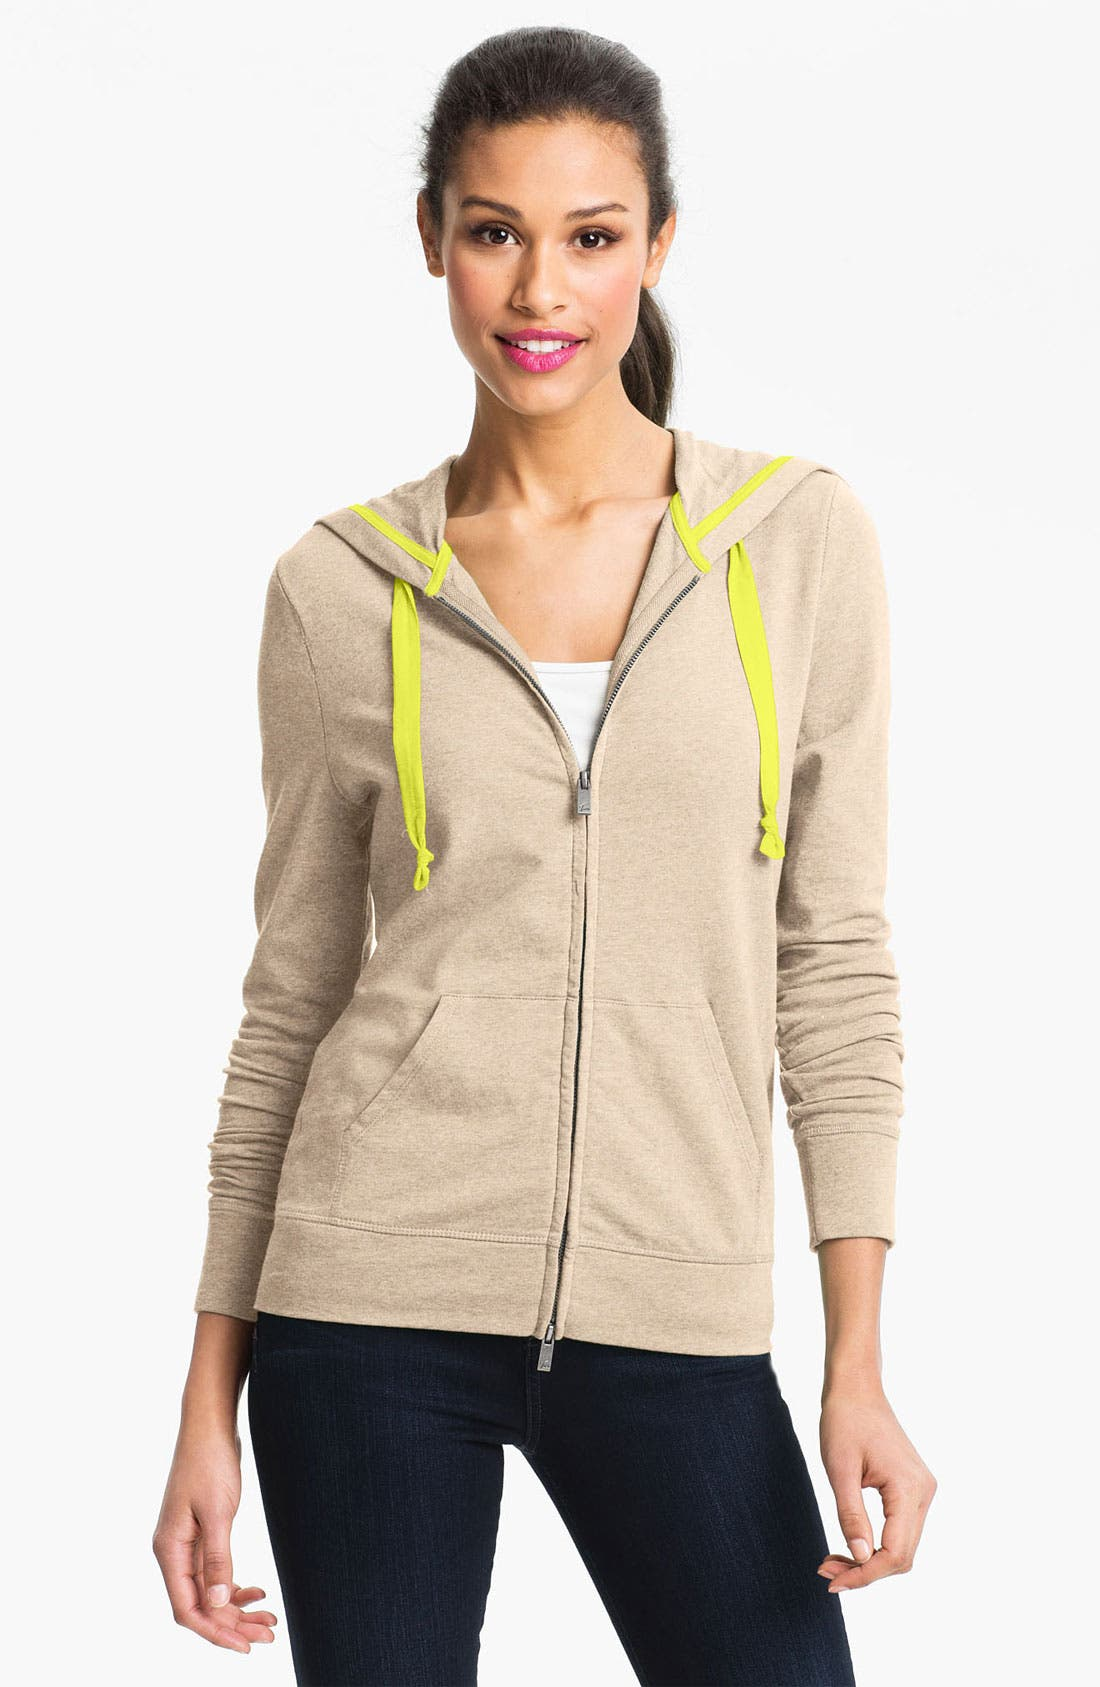 Alternate Image 1 Selected - Two by Vince Camuto Hooded Sweatshirt